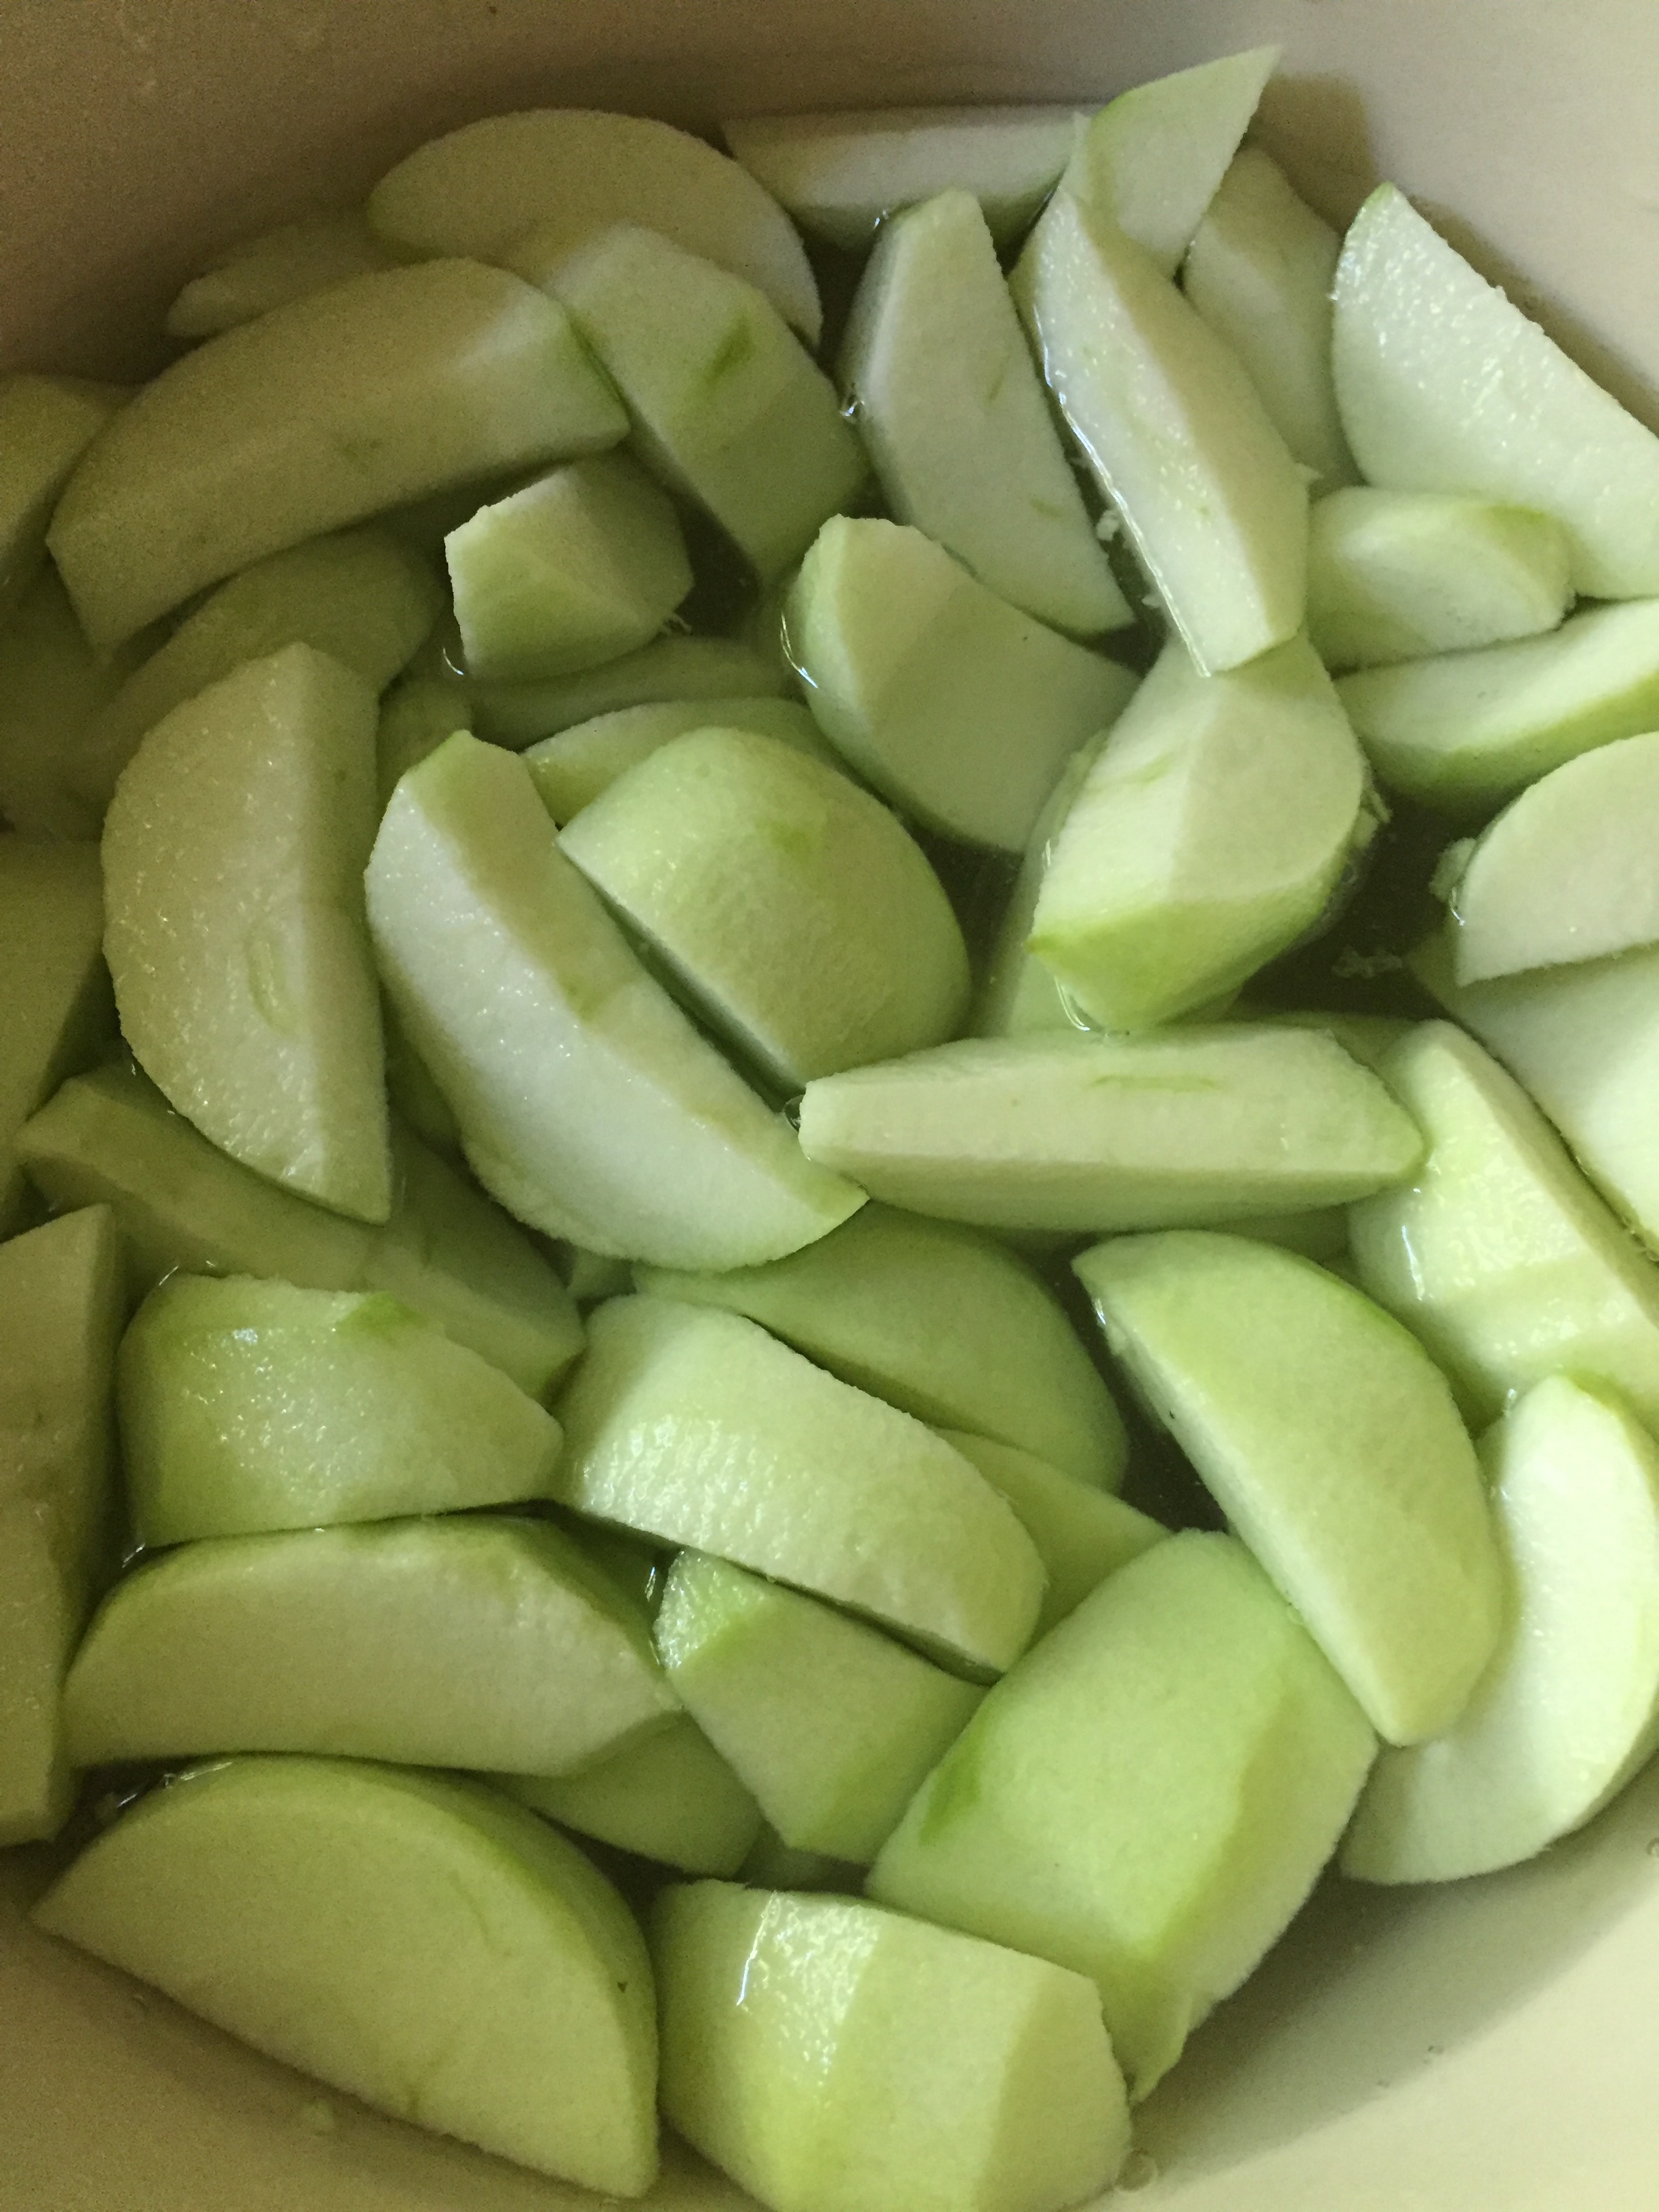 The apples soaking in a water bath with a little Ball 'fruit fresh' mixed in to keep them from browning